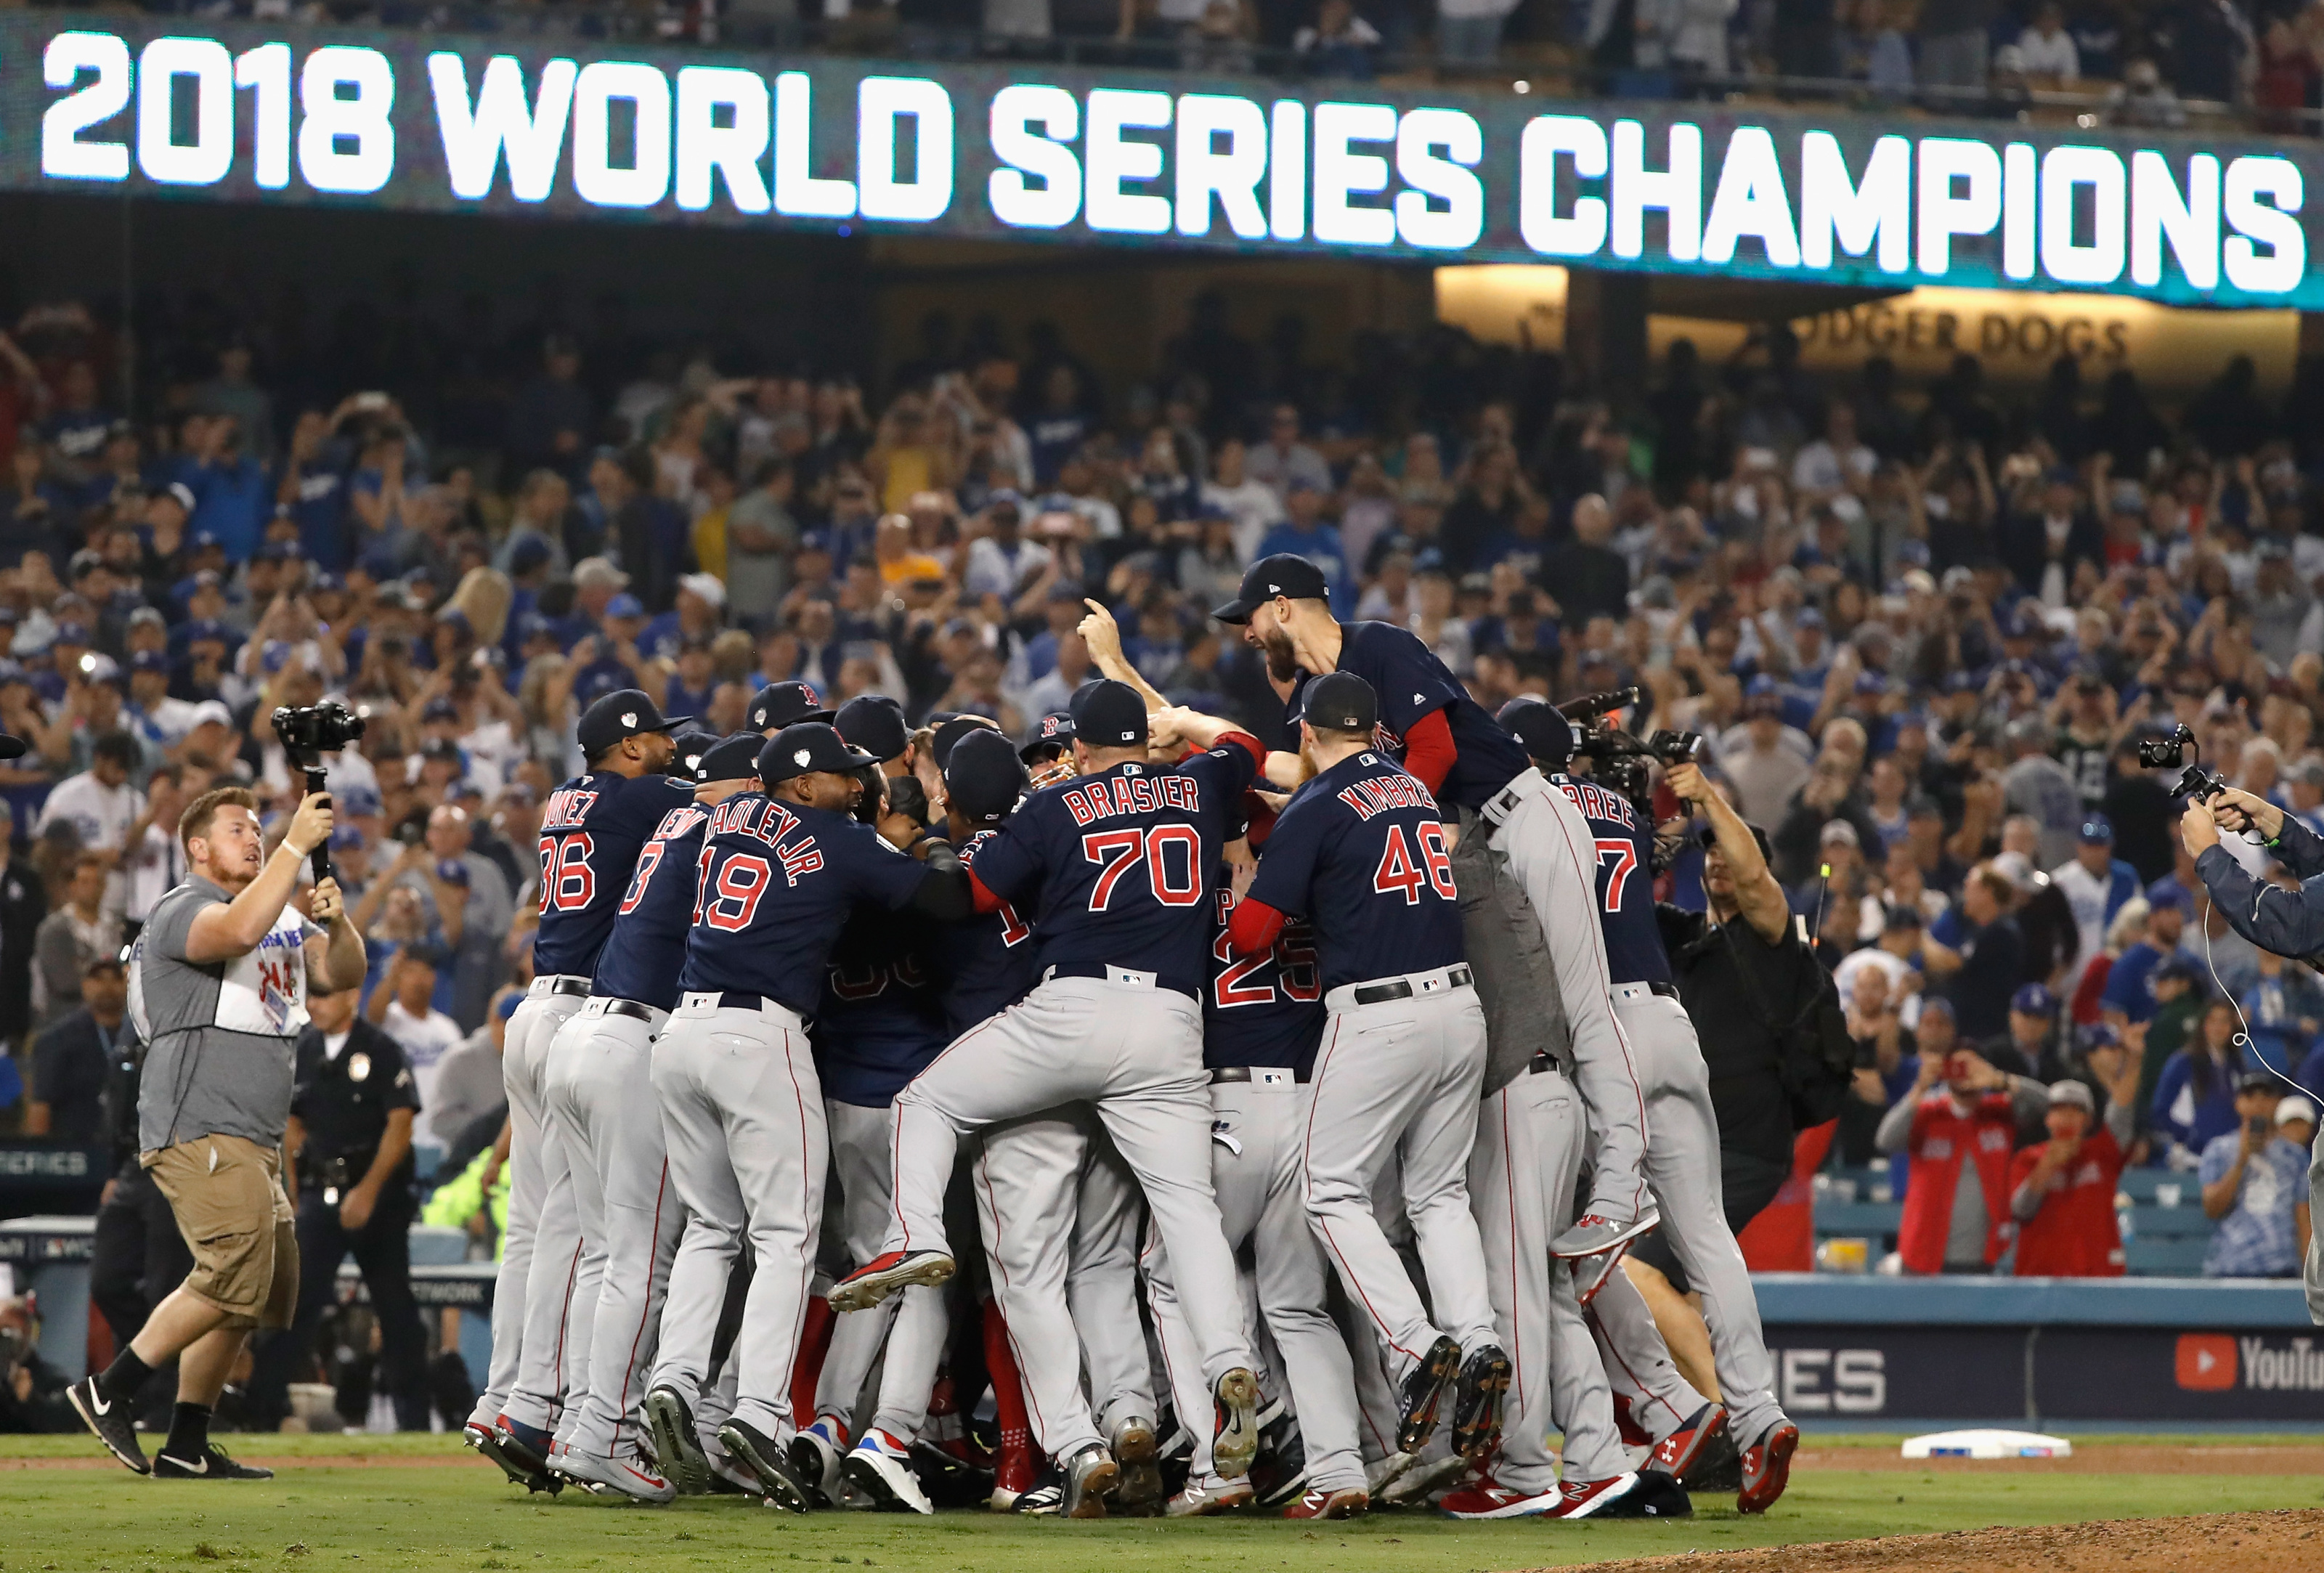 Top 5 Boston Red Sox 2018 World Series moments